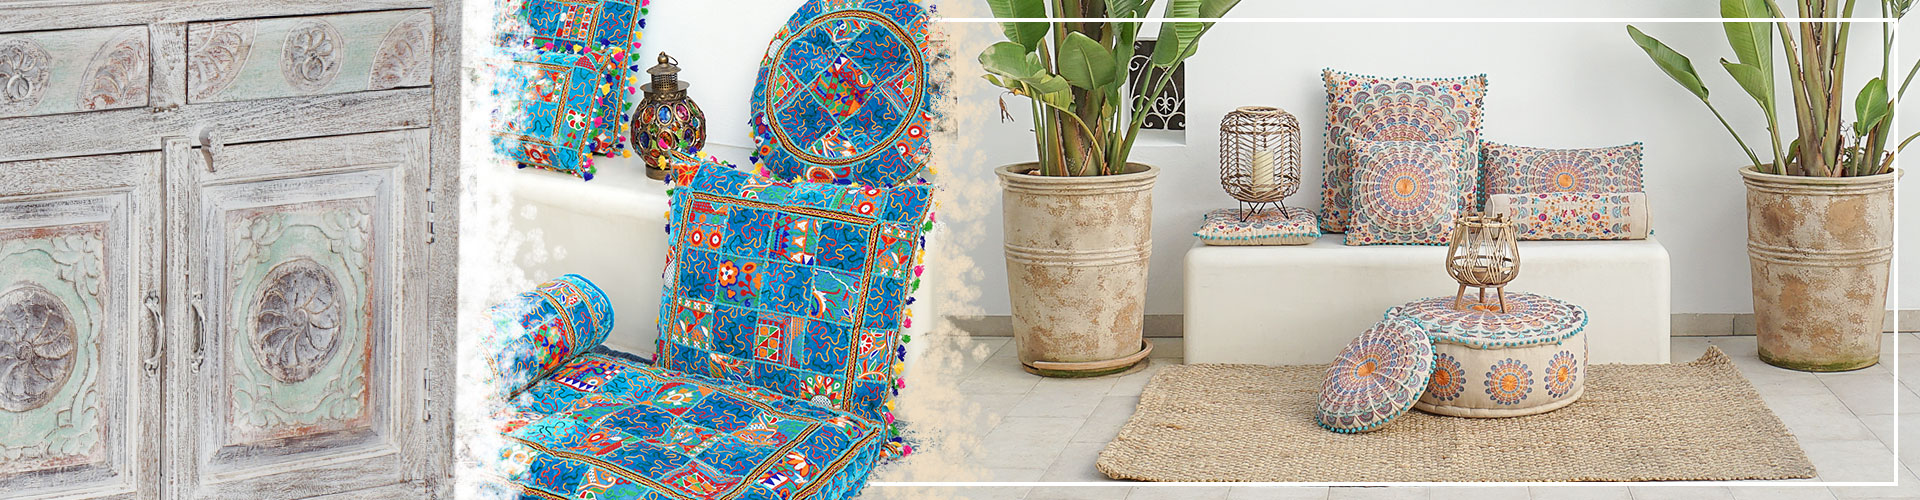 Wholesale Of Gifts And Home Decoration Items | ITEM ...